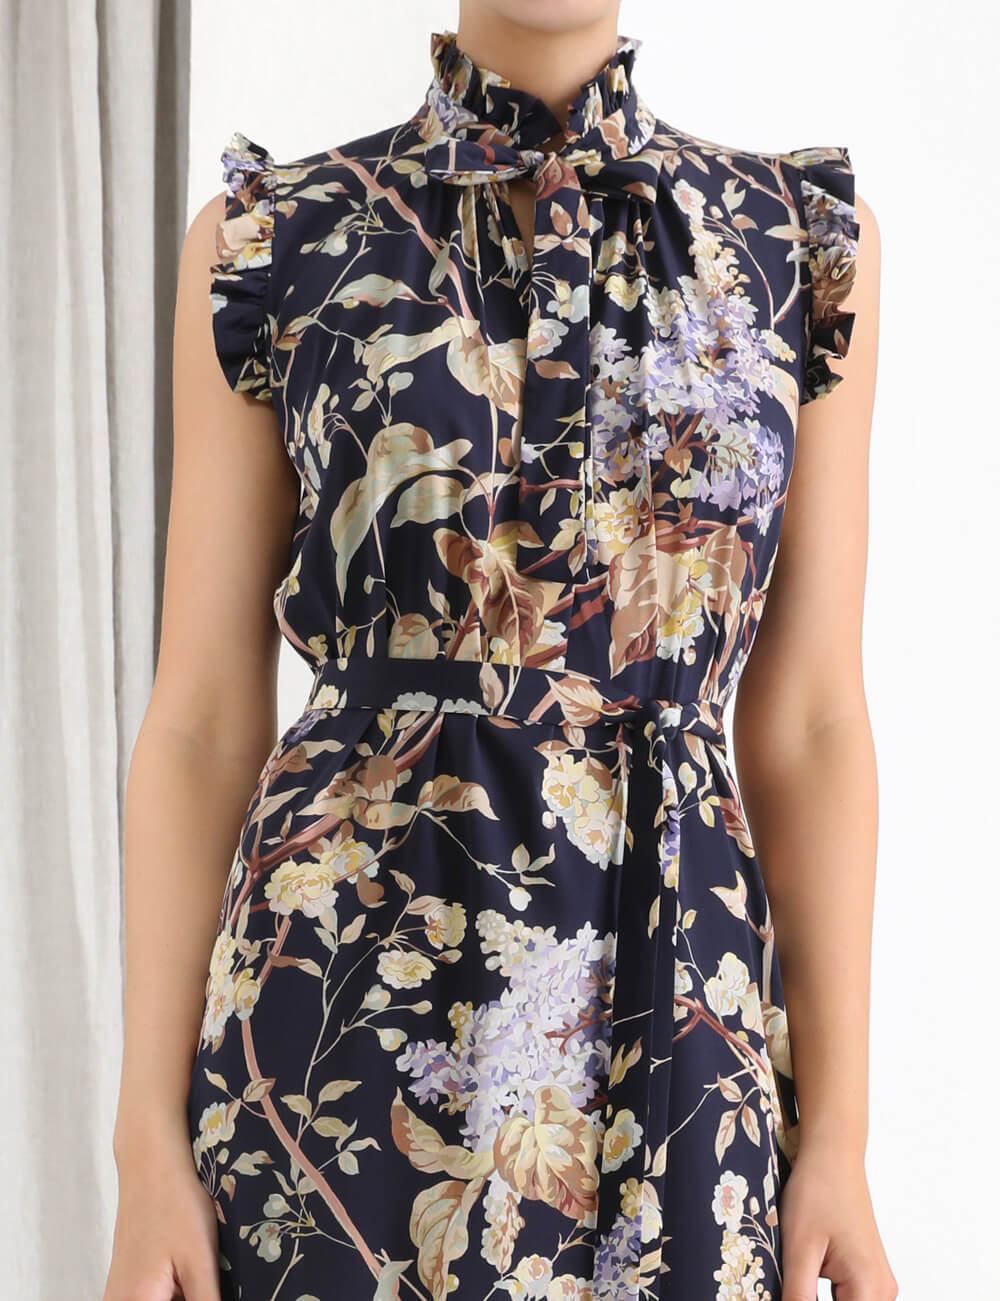 Sabotage Tie Dress